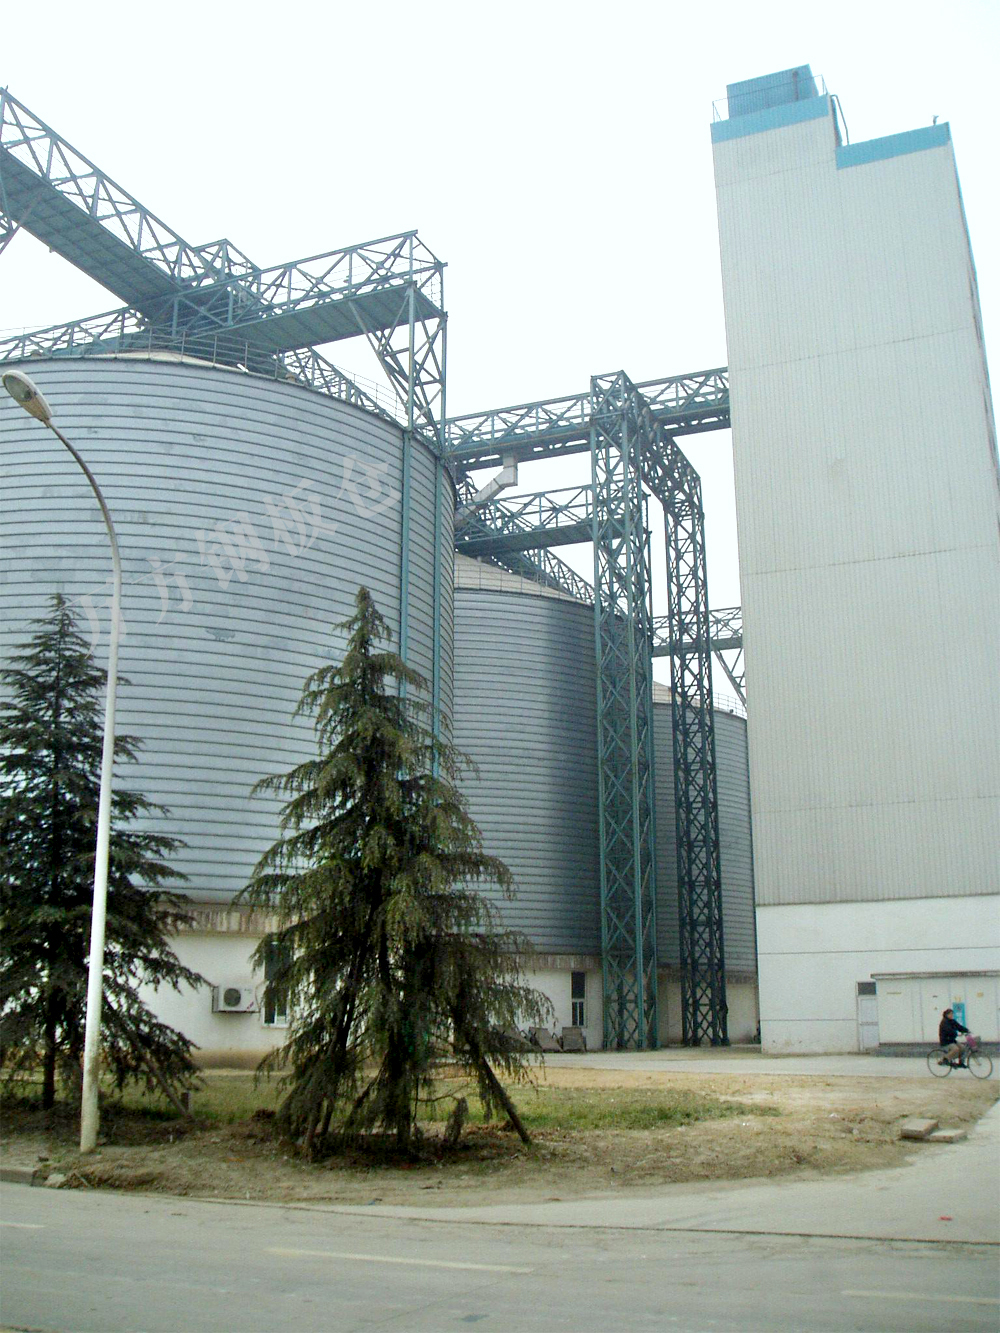 How to maintain large steel silo?